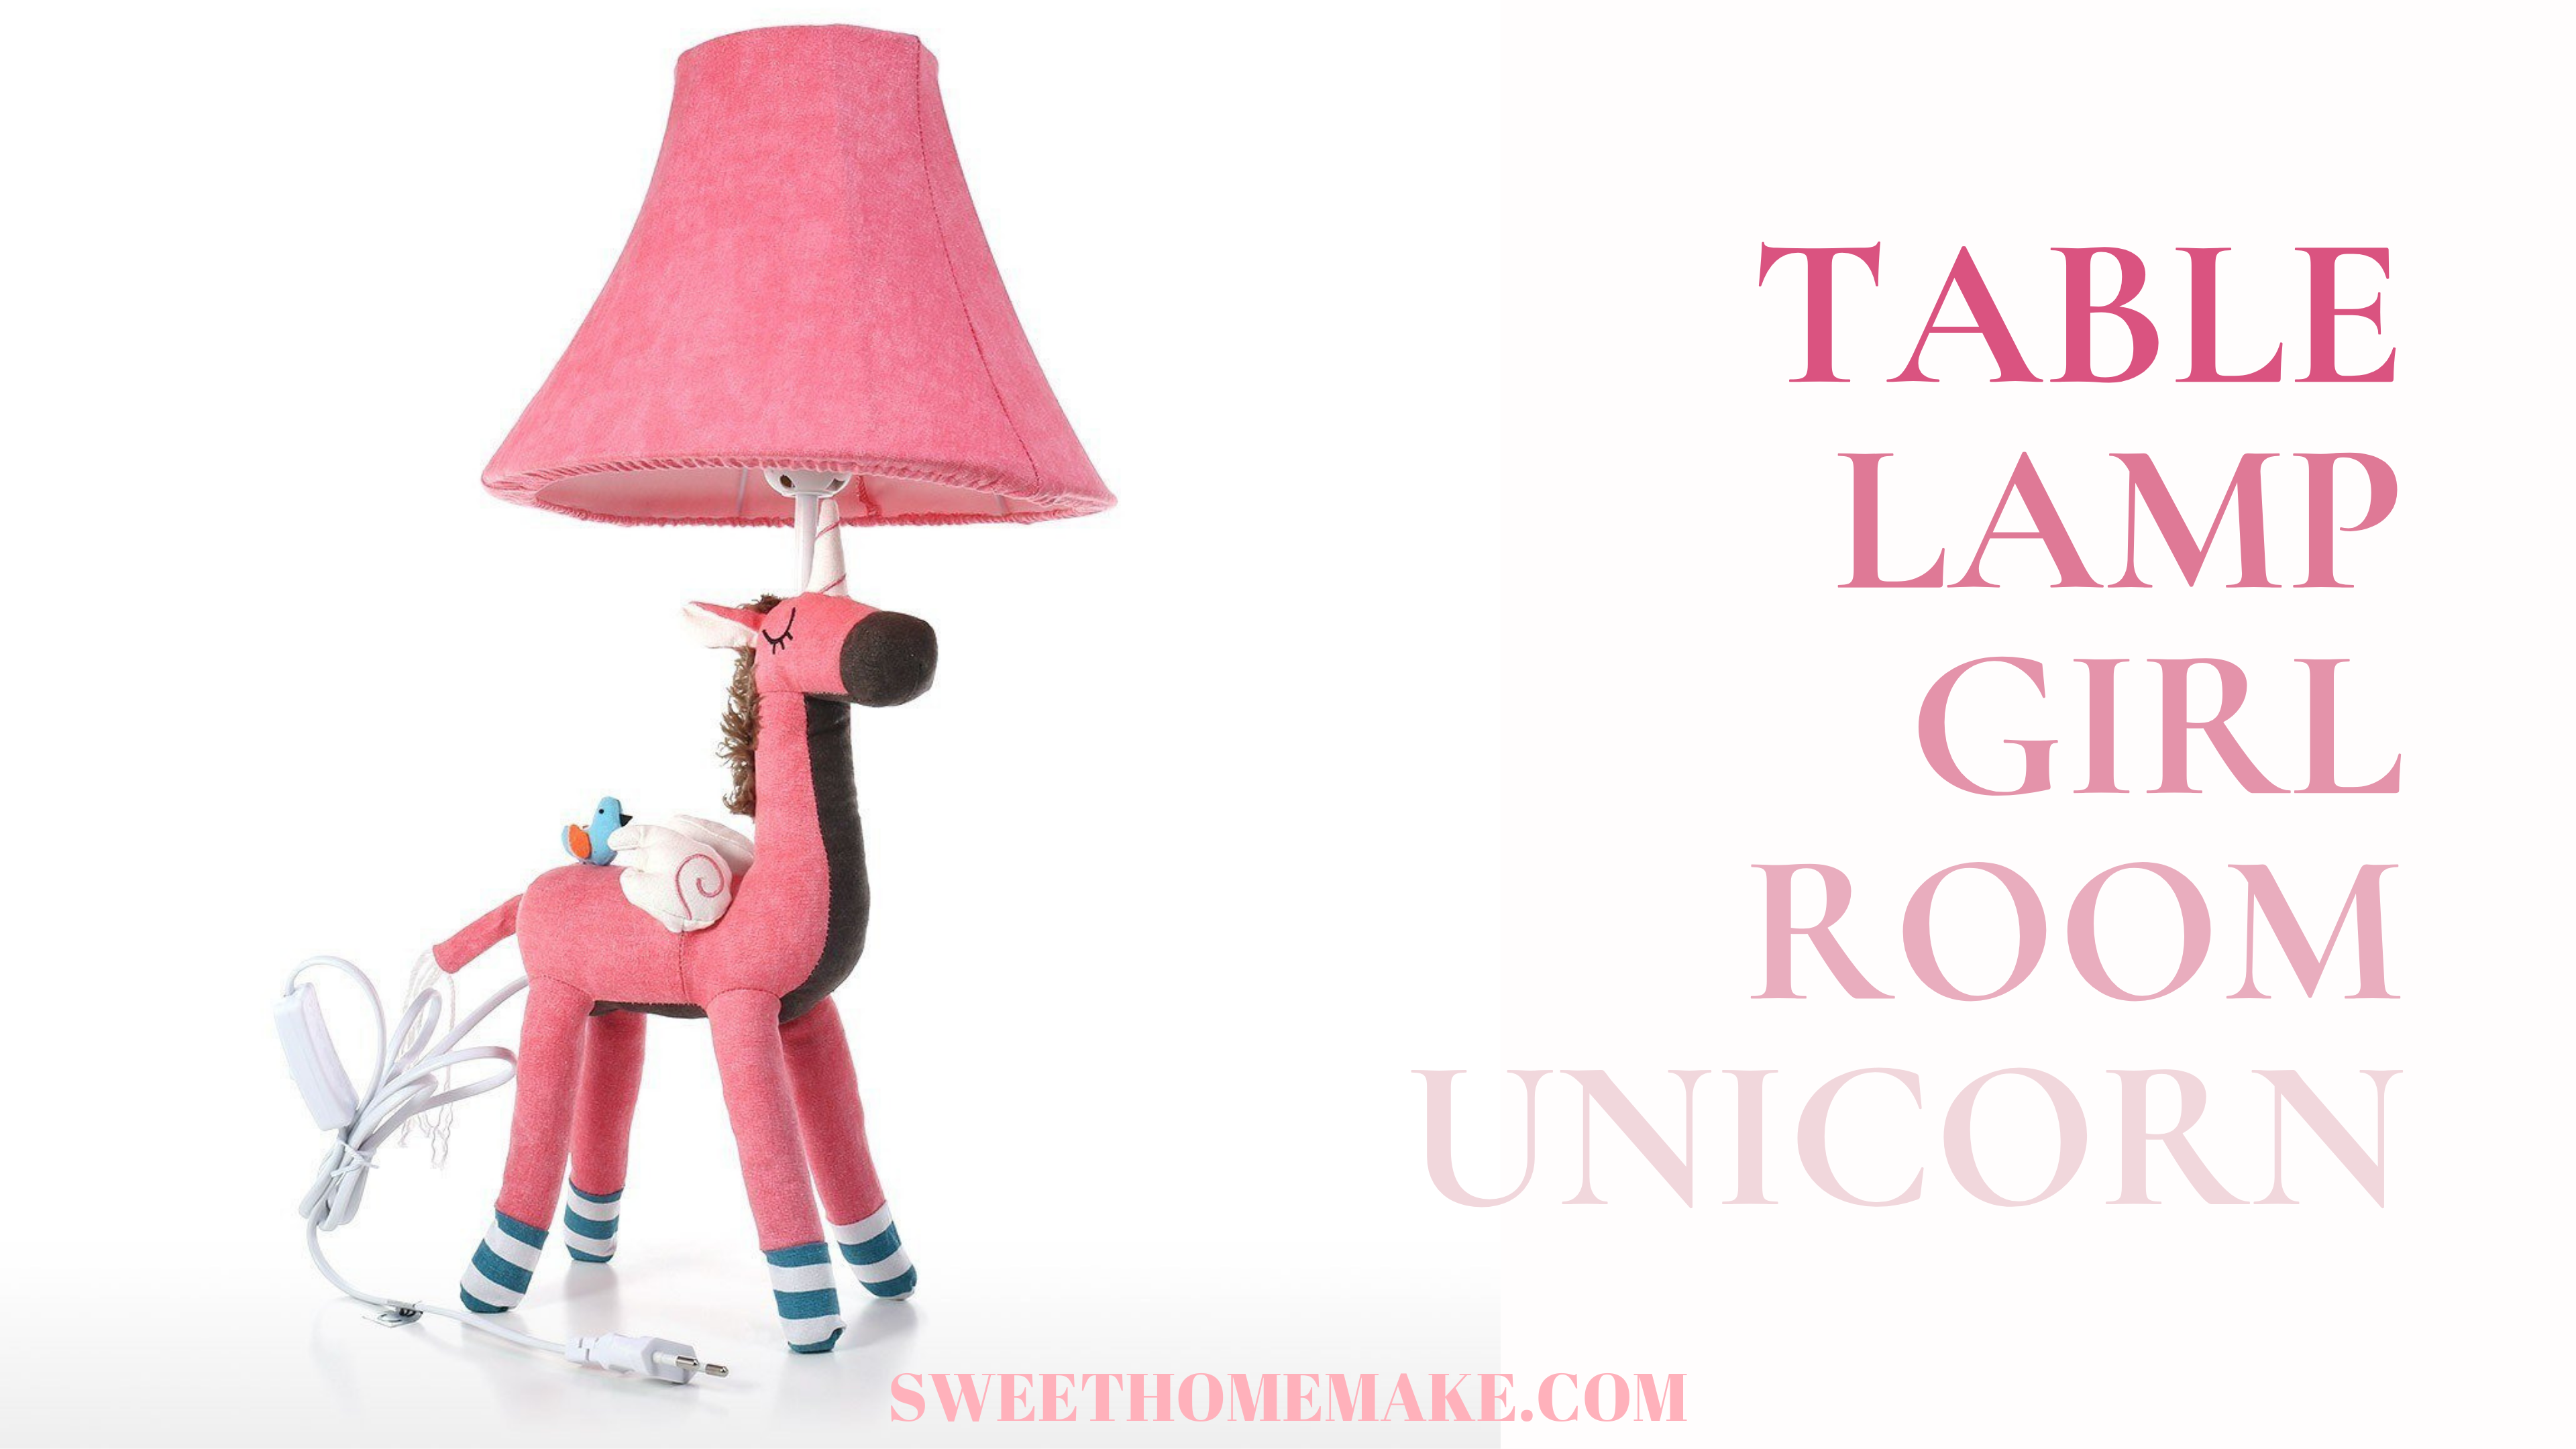 Girls Desk Lamp and Sweet Table lamp for Girl Room